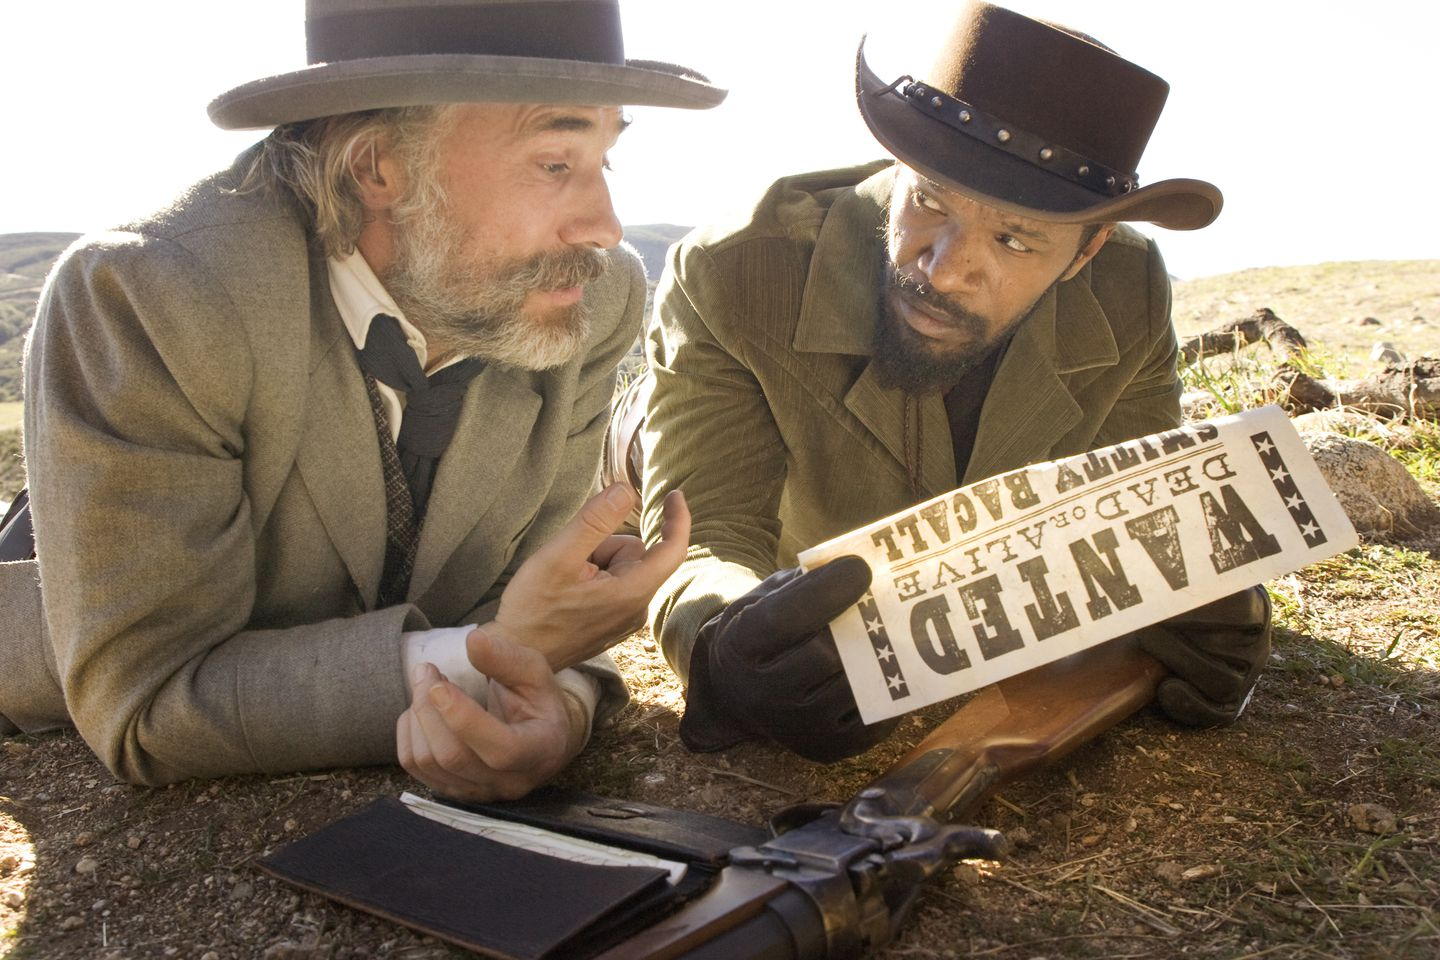 how many times do they say the n word in django